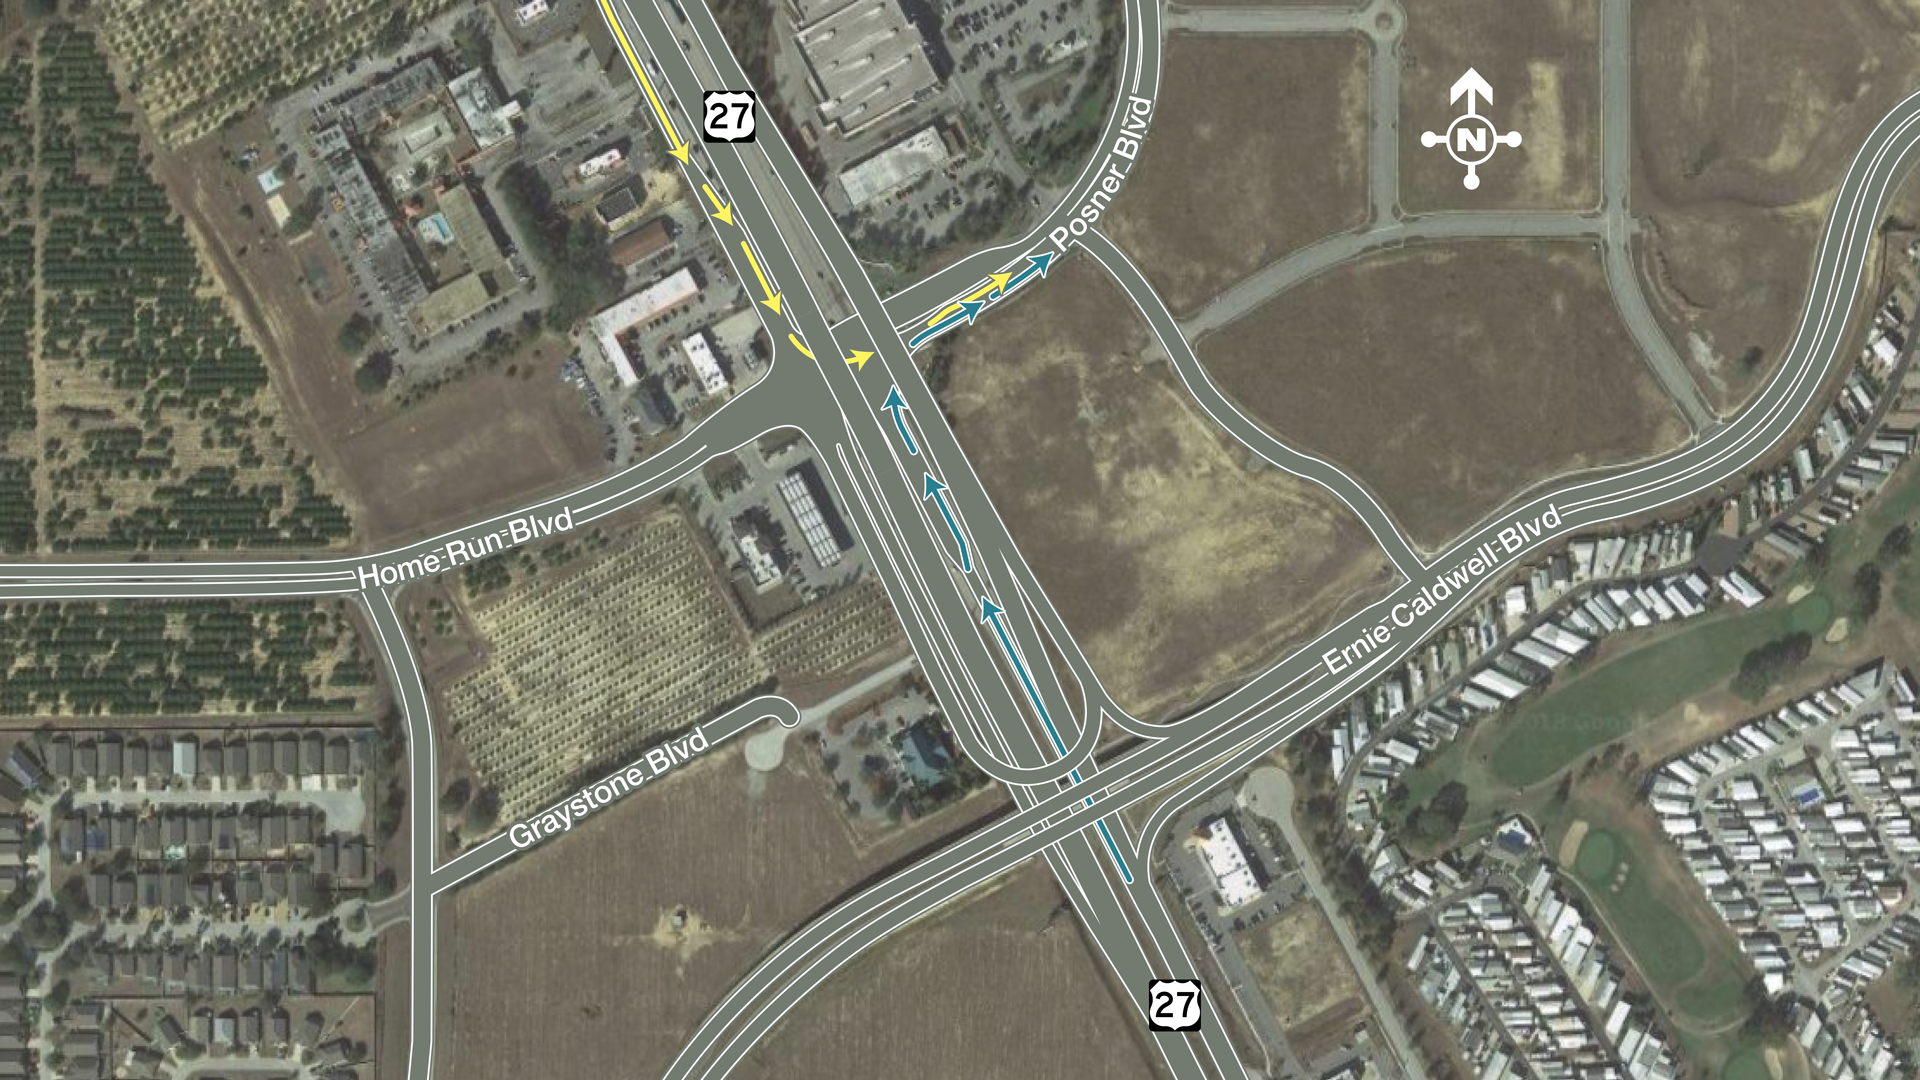 3388-US-27-Posner-Blvd-Interchange-Rendering